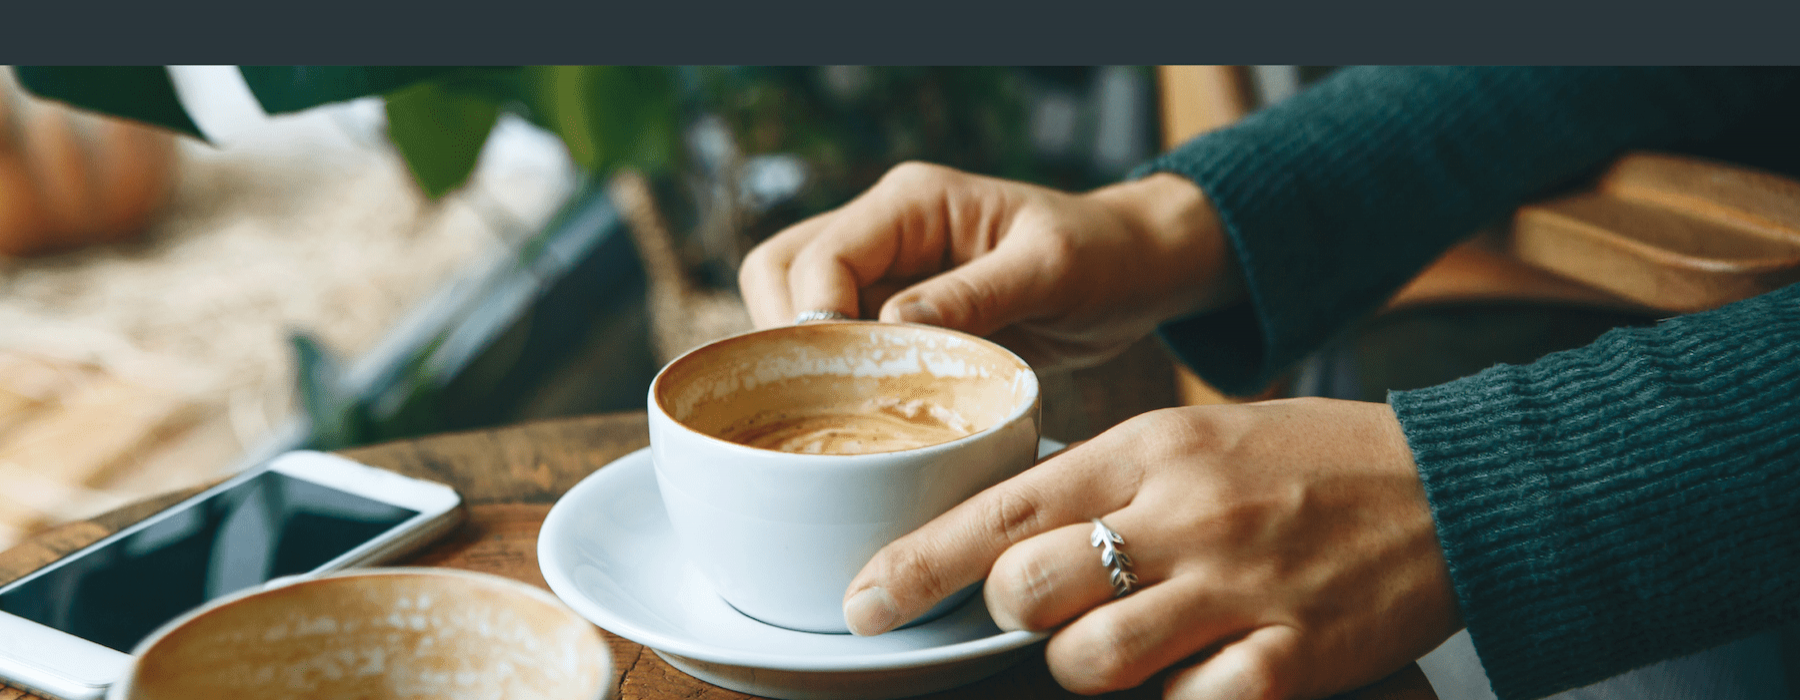 hands grabbing coffee from small wooden table.